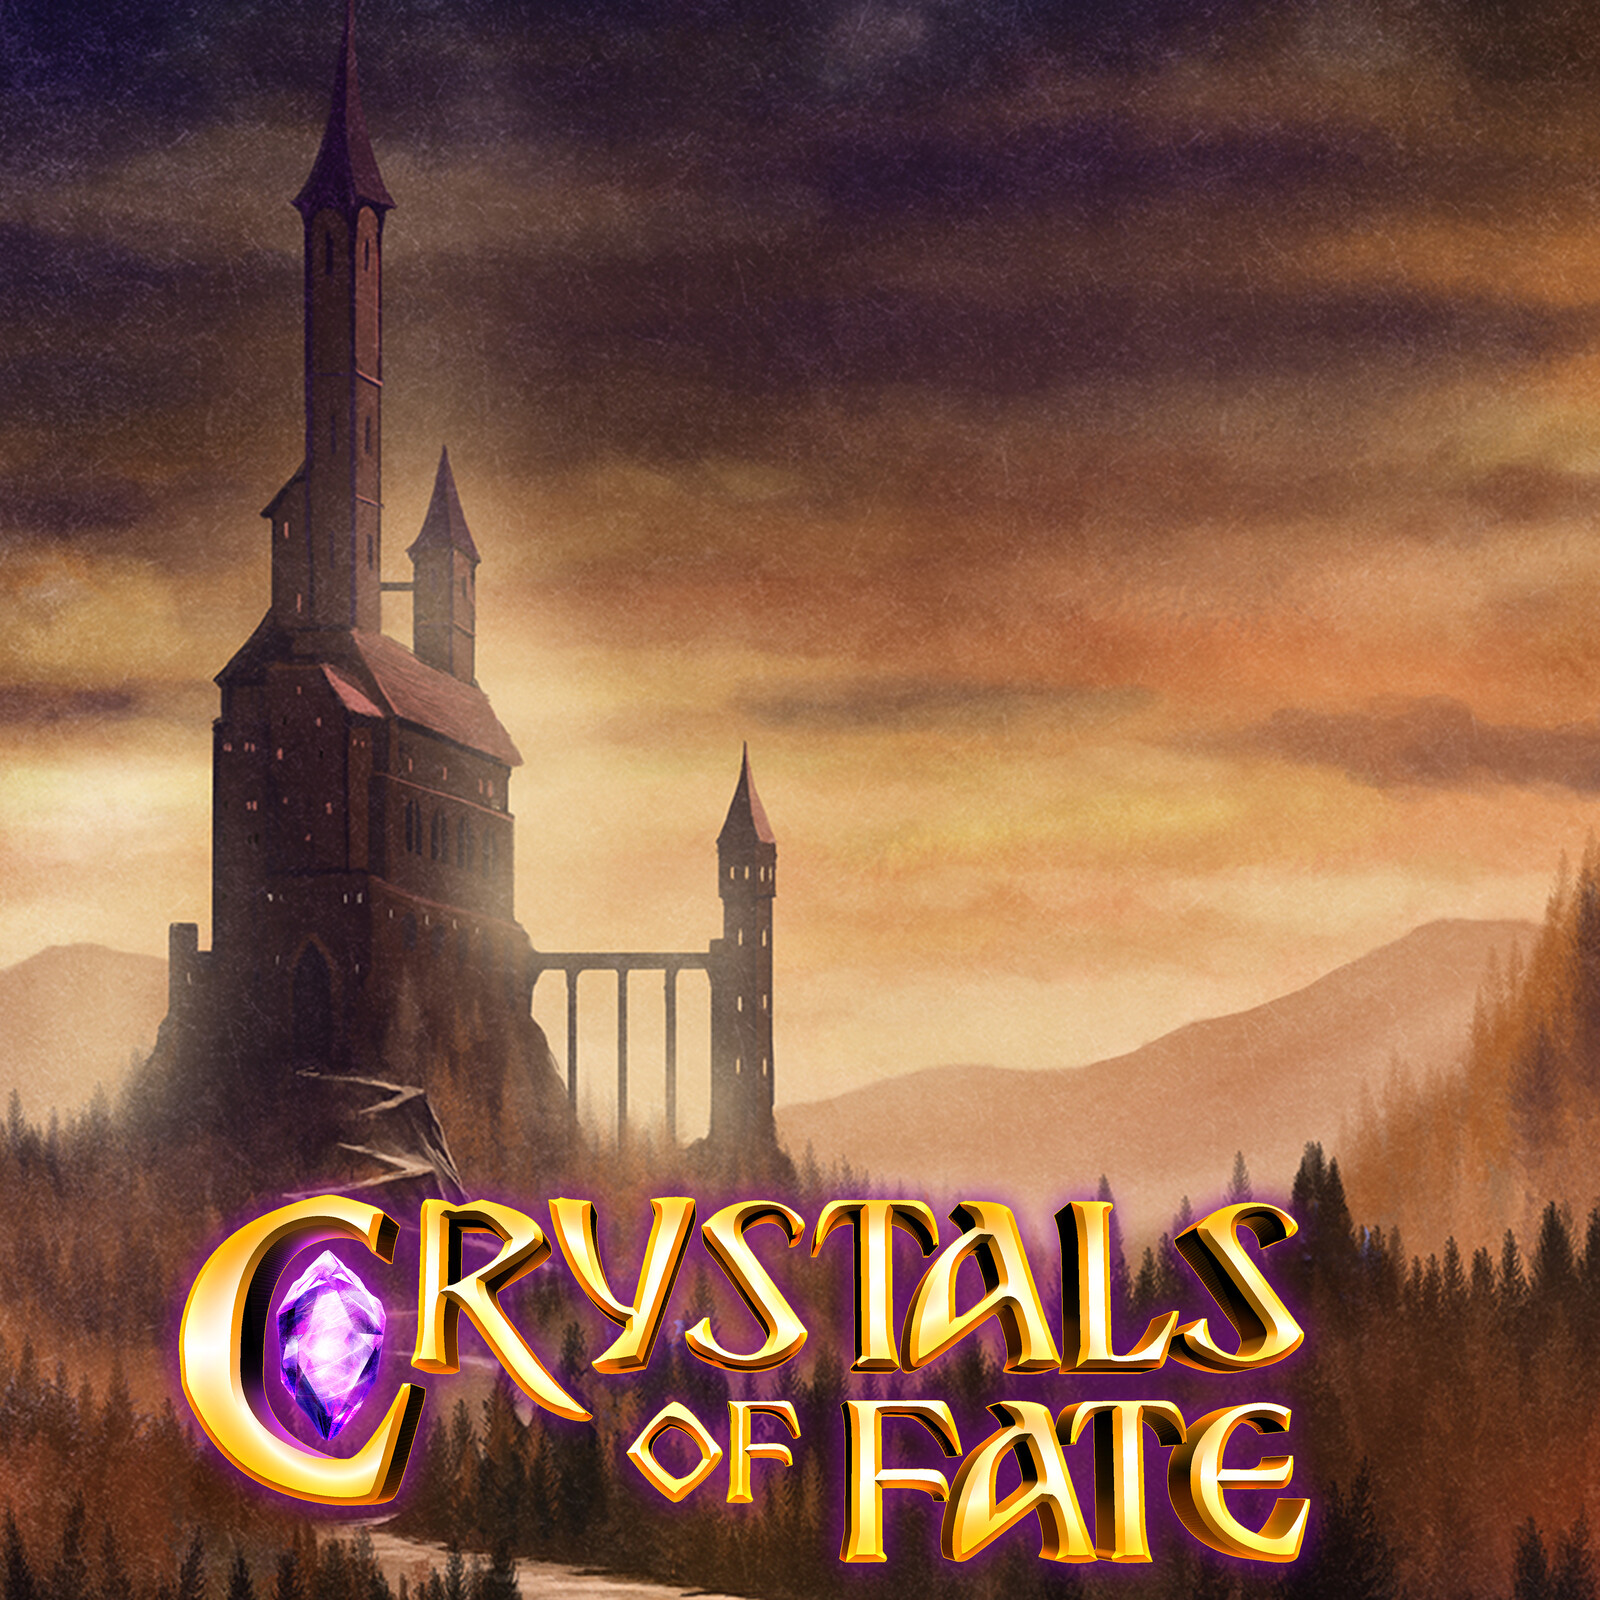 Landscapes - Crystals of Fate